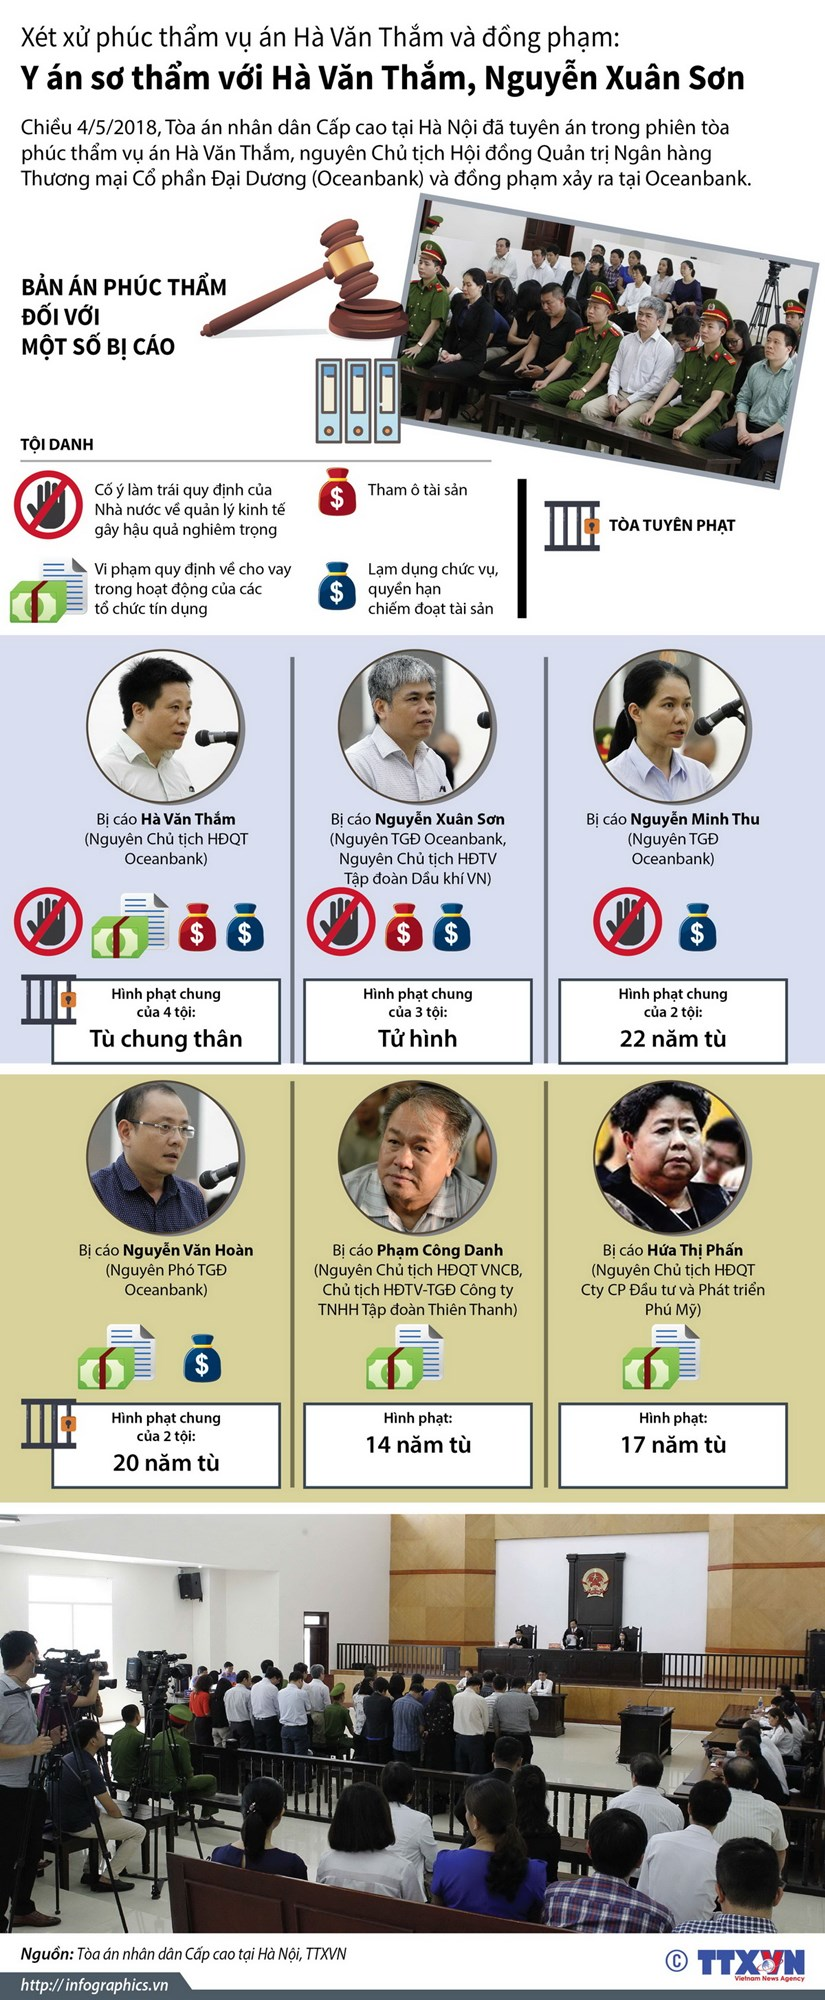 [Infographics] Y an so tham voi Ha Van Tham, Nguyen Xuan Son hinh anh 1